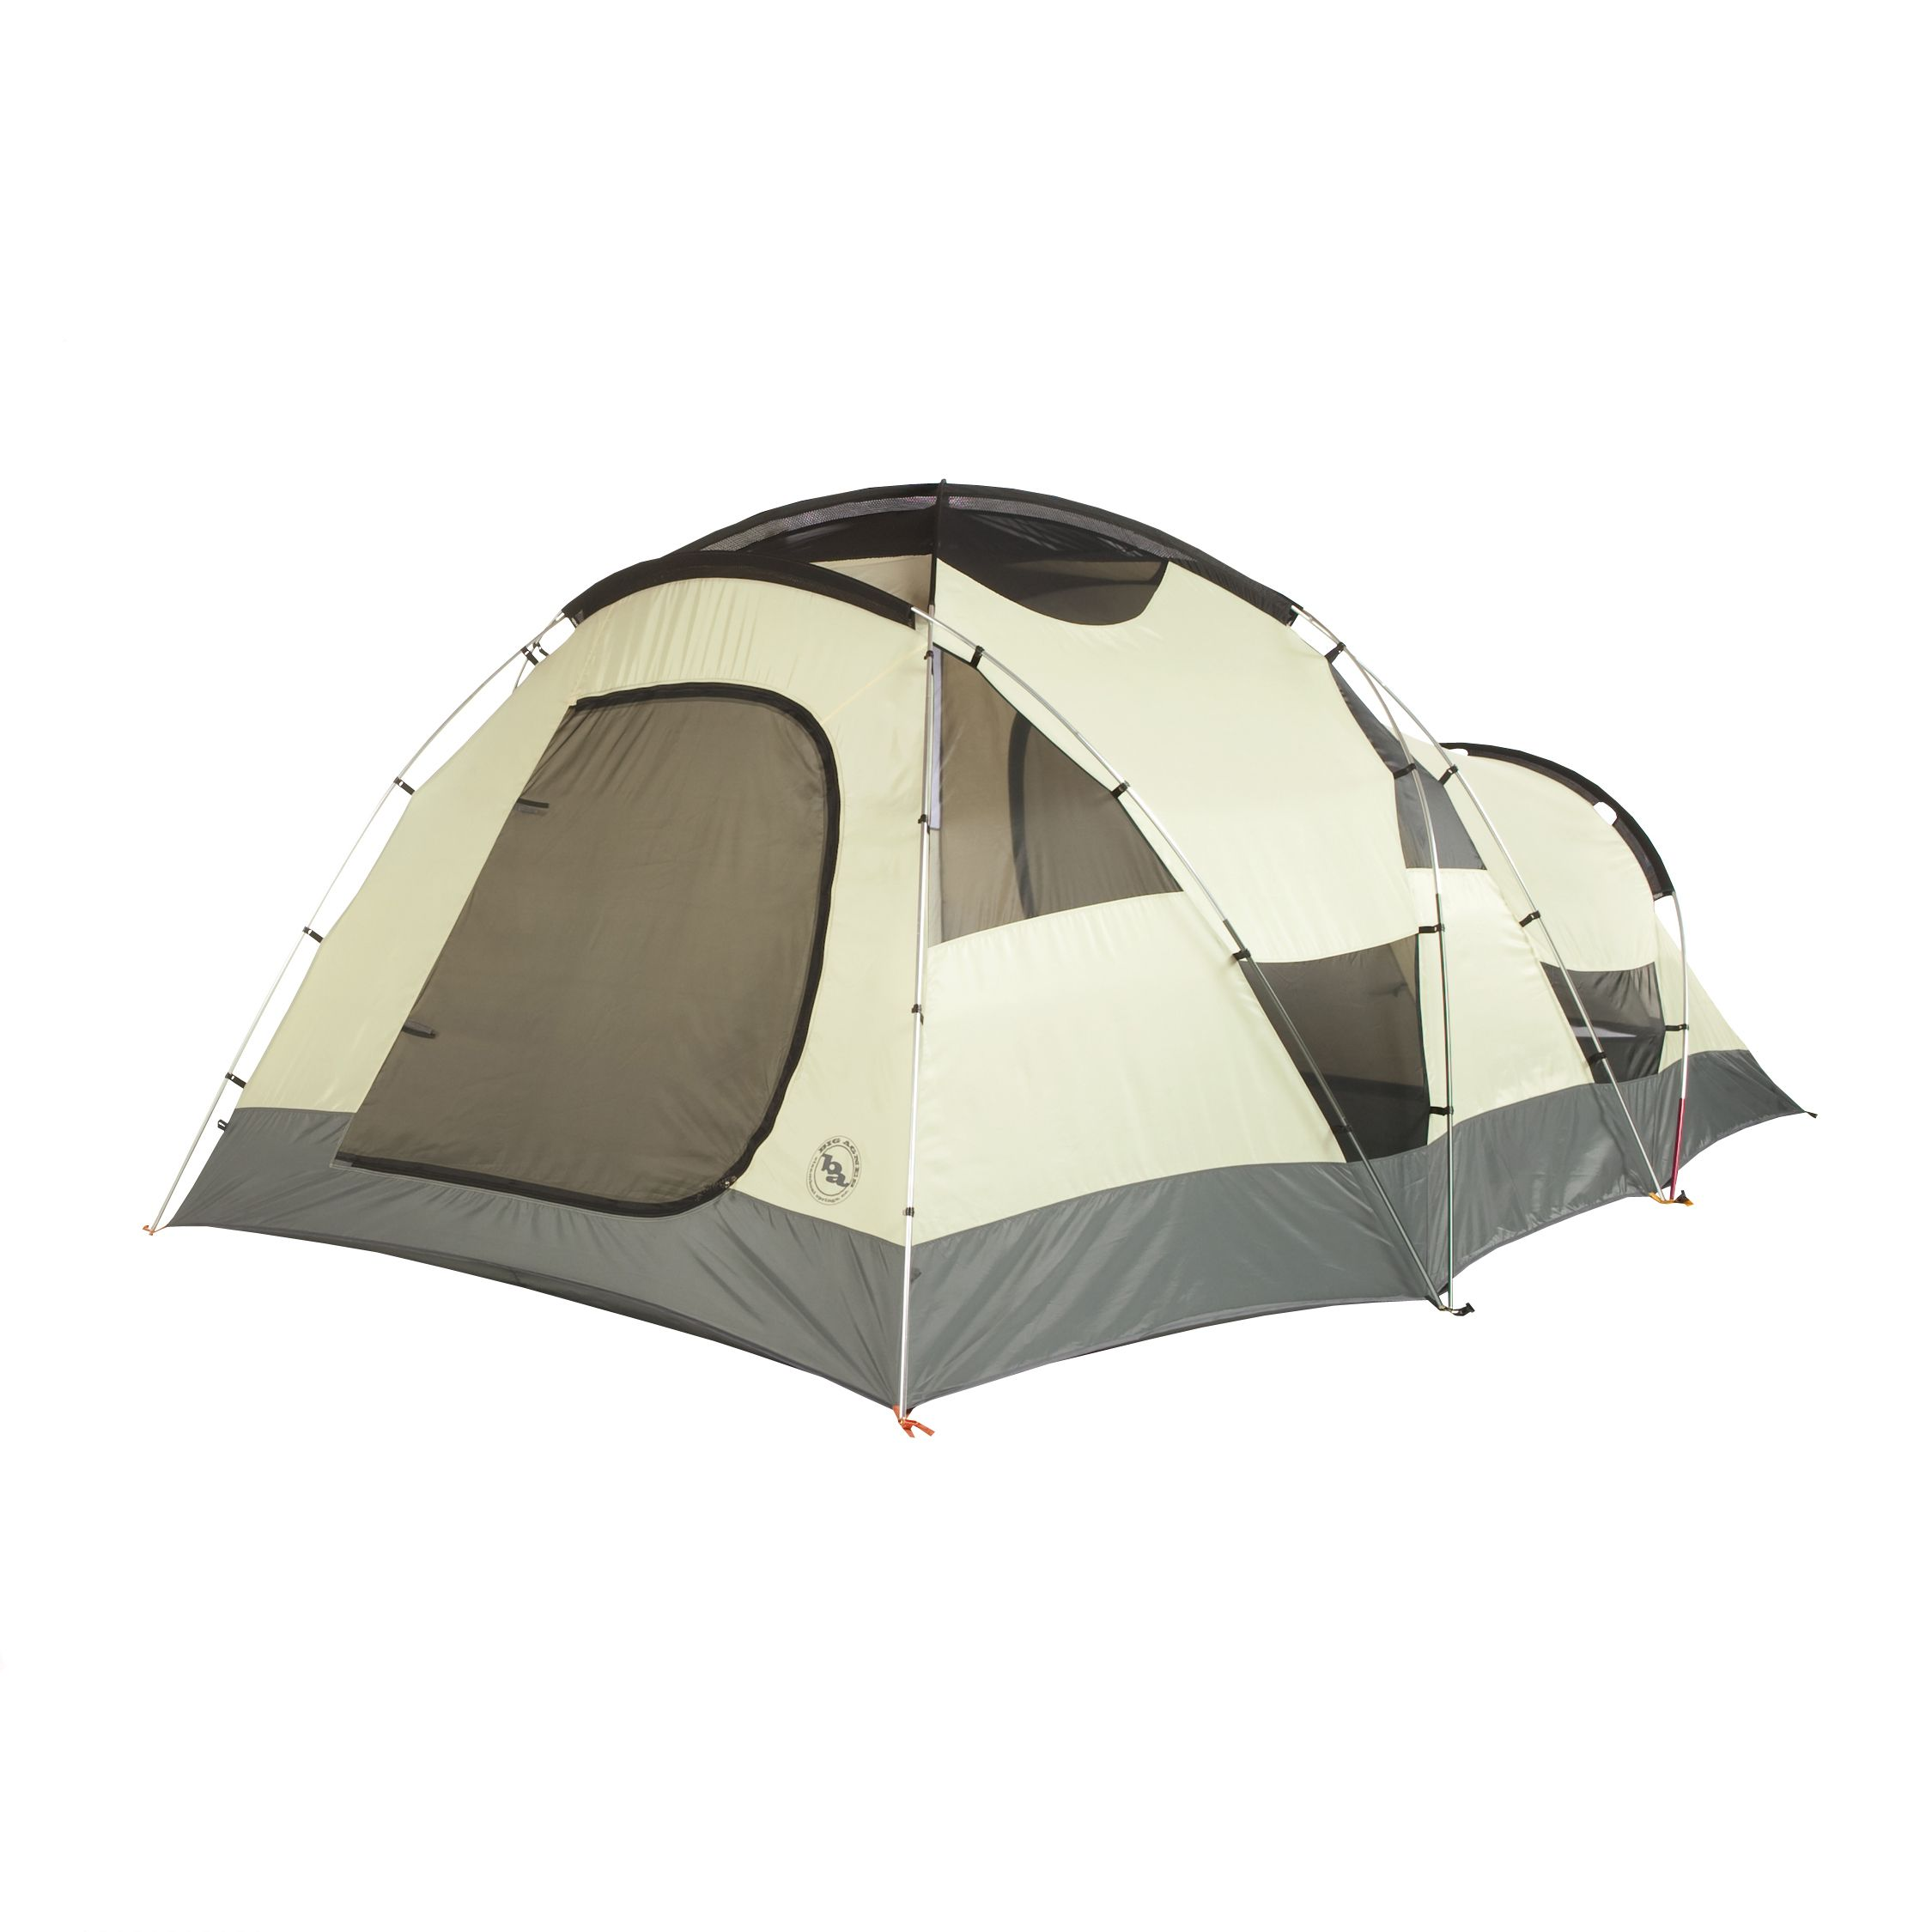 Big Agnes Flying Diamond 4 Season Tent 6 Person - Four season free standing  sc 1 st  Pinterest : 4 season tents cheap - memphite.com